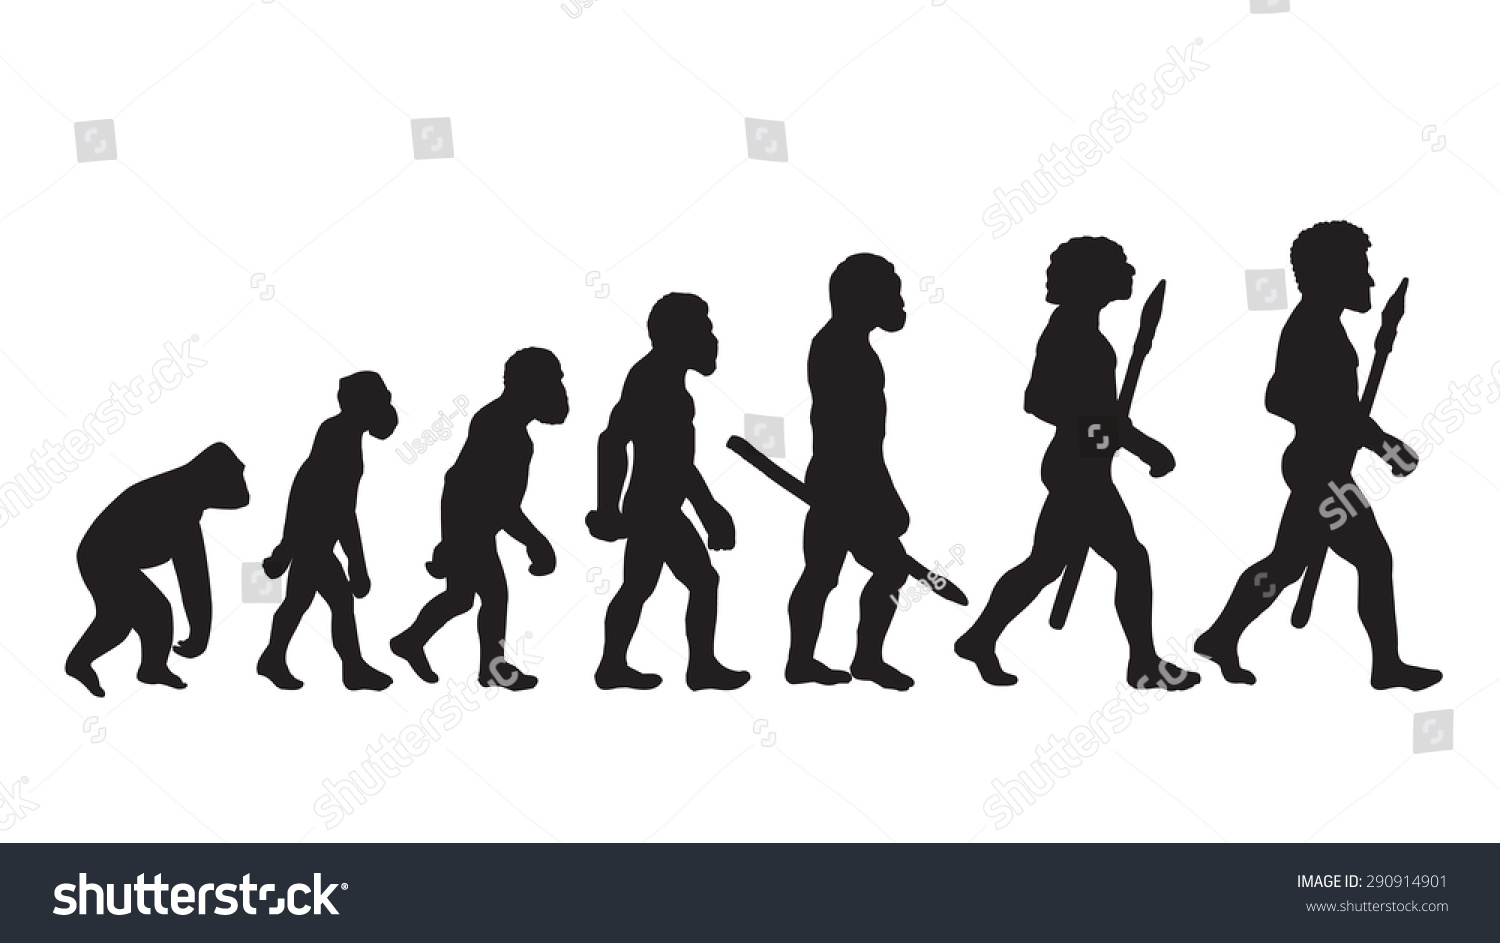 Evolution Vectors Photos and PSD files